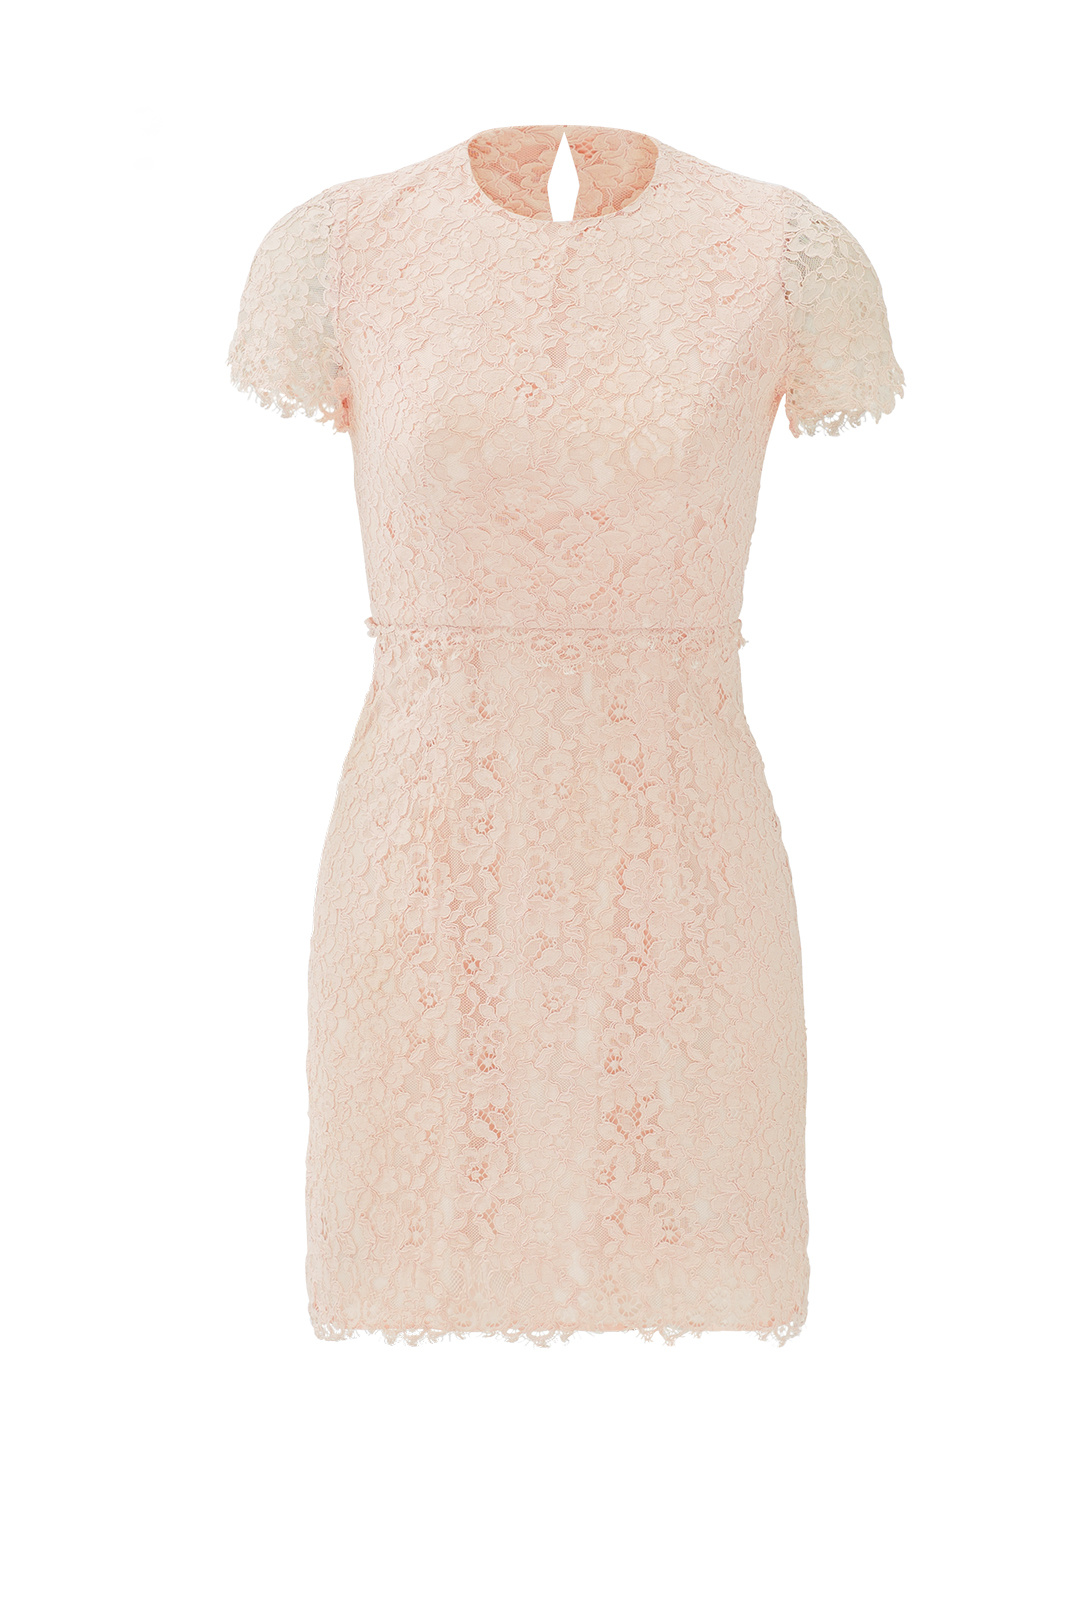 f4db9550 Details about Shoshanna Pink Women's Size 12 Crewneck Floral Lace Sheath  Dress $385- #632